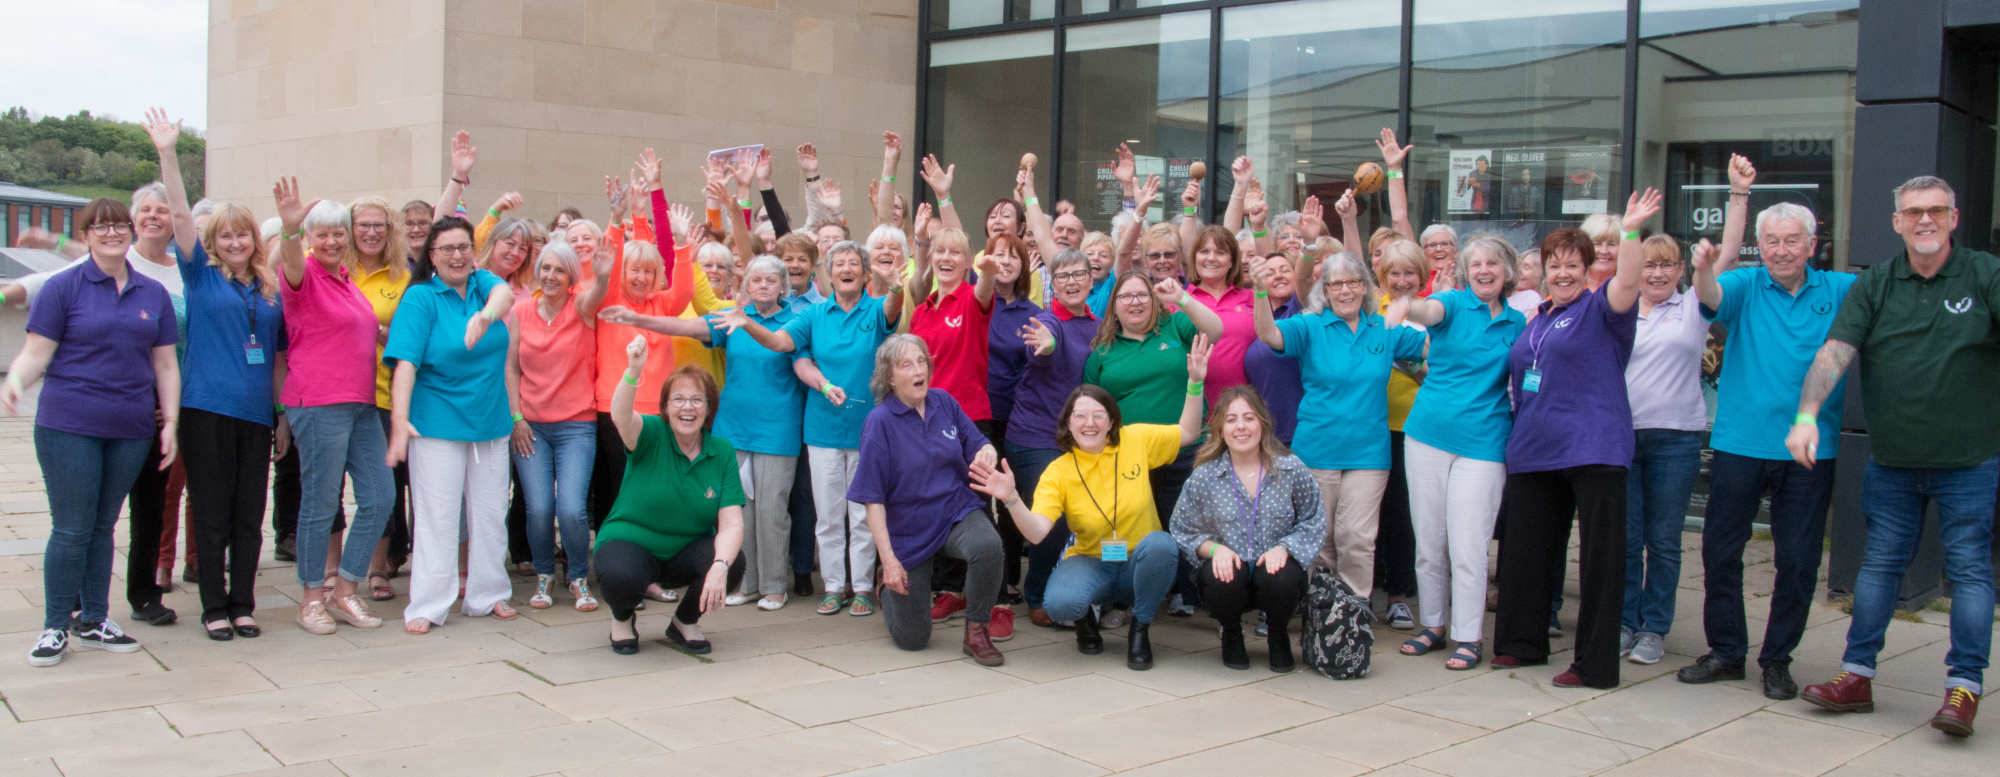 Singergy Cheering at Durham Big Sing 2019